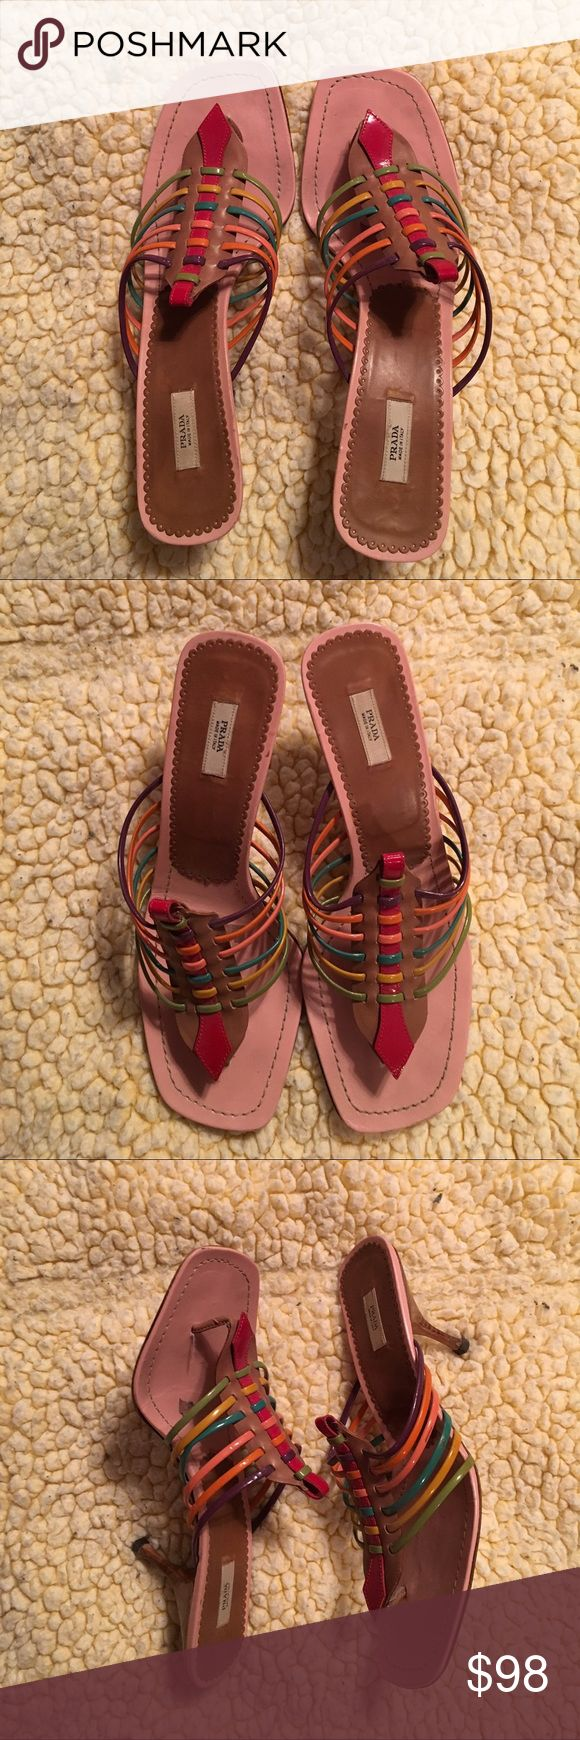 """Prada multi color strappy heeled sandals Prada multi color strappy sandals with 3"""" heels. Patent leather tops, leather soles & wooden heels. Size 10. Made in Italy. Worn a few times. Excellent used condition. Non smoking environment. Pet friendly household. Prada Shoes"""